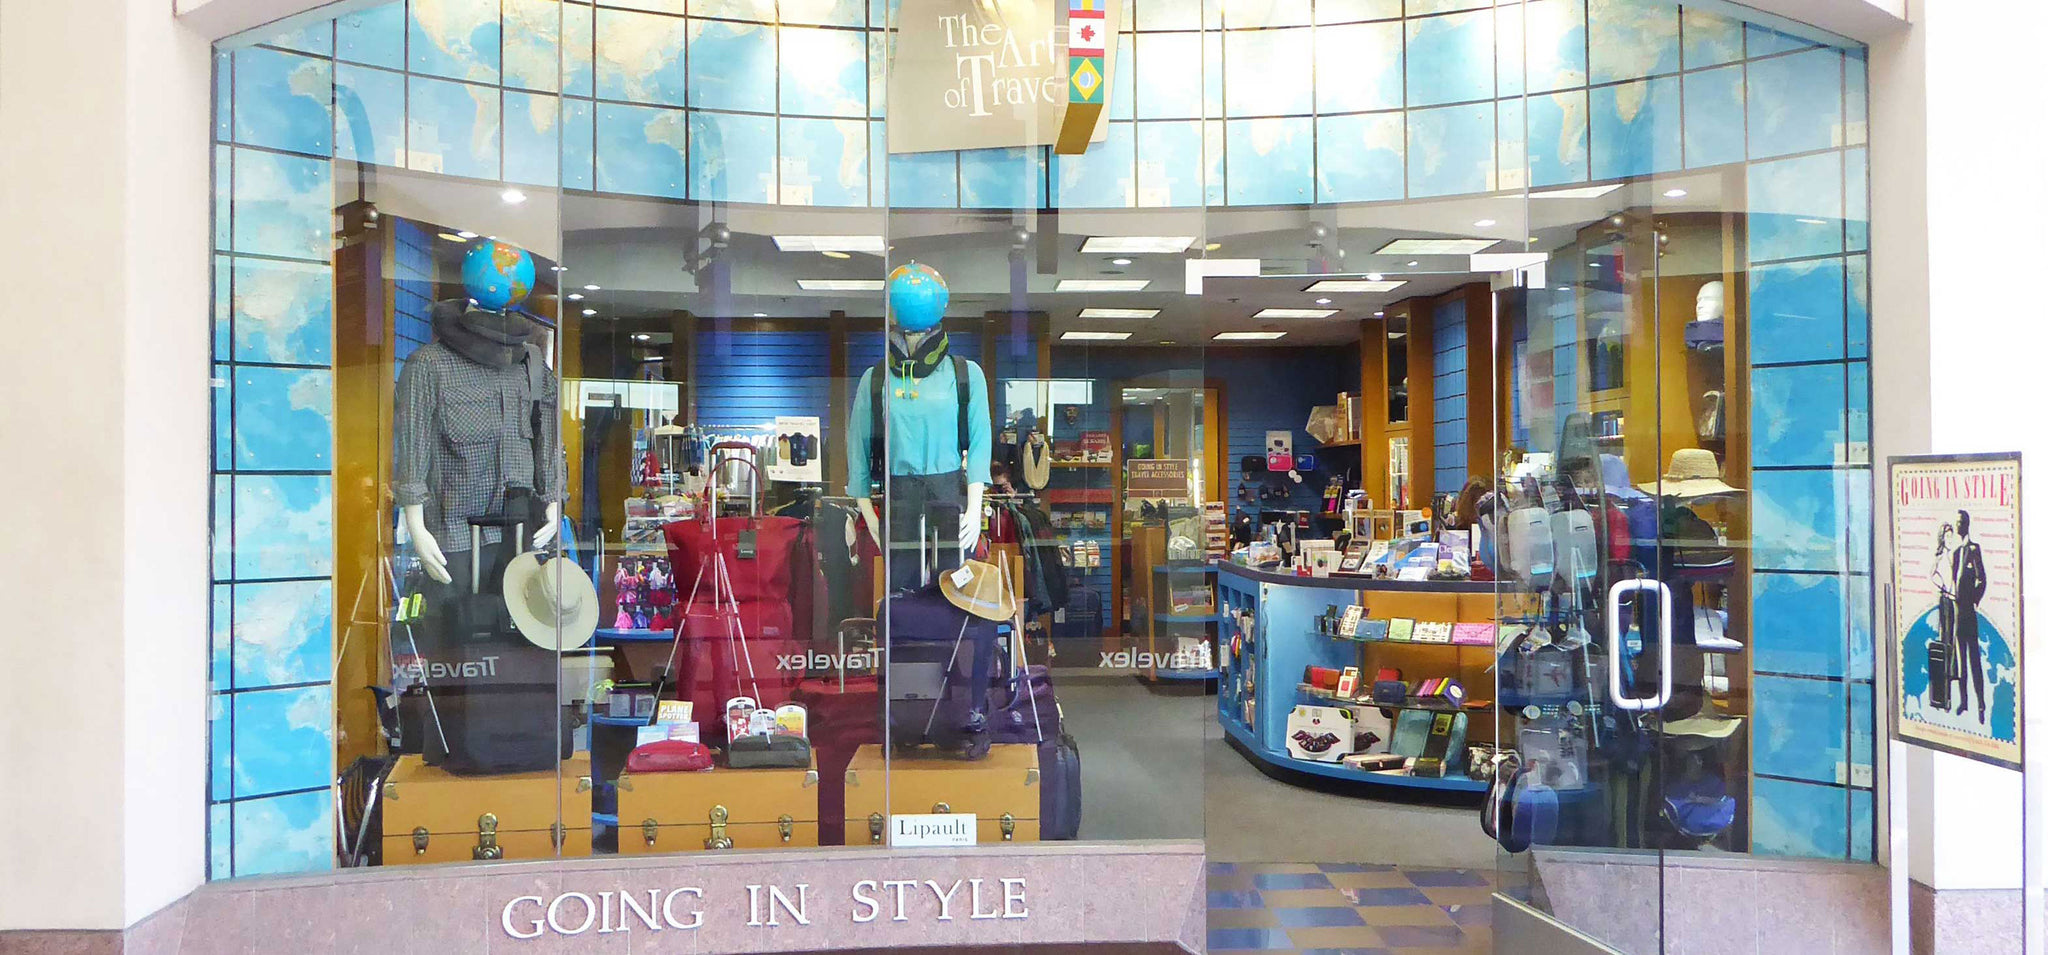 Going In Style Stanford Storefront in Bay Area California